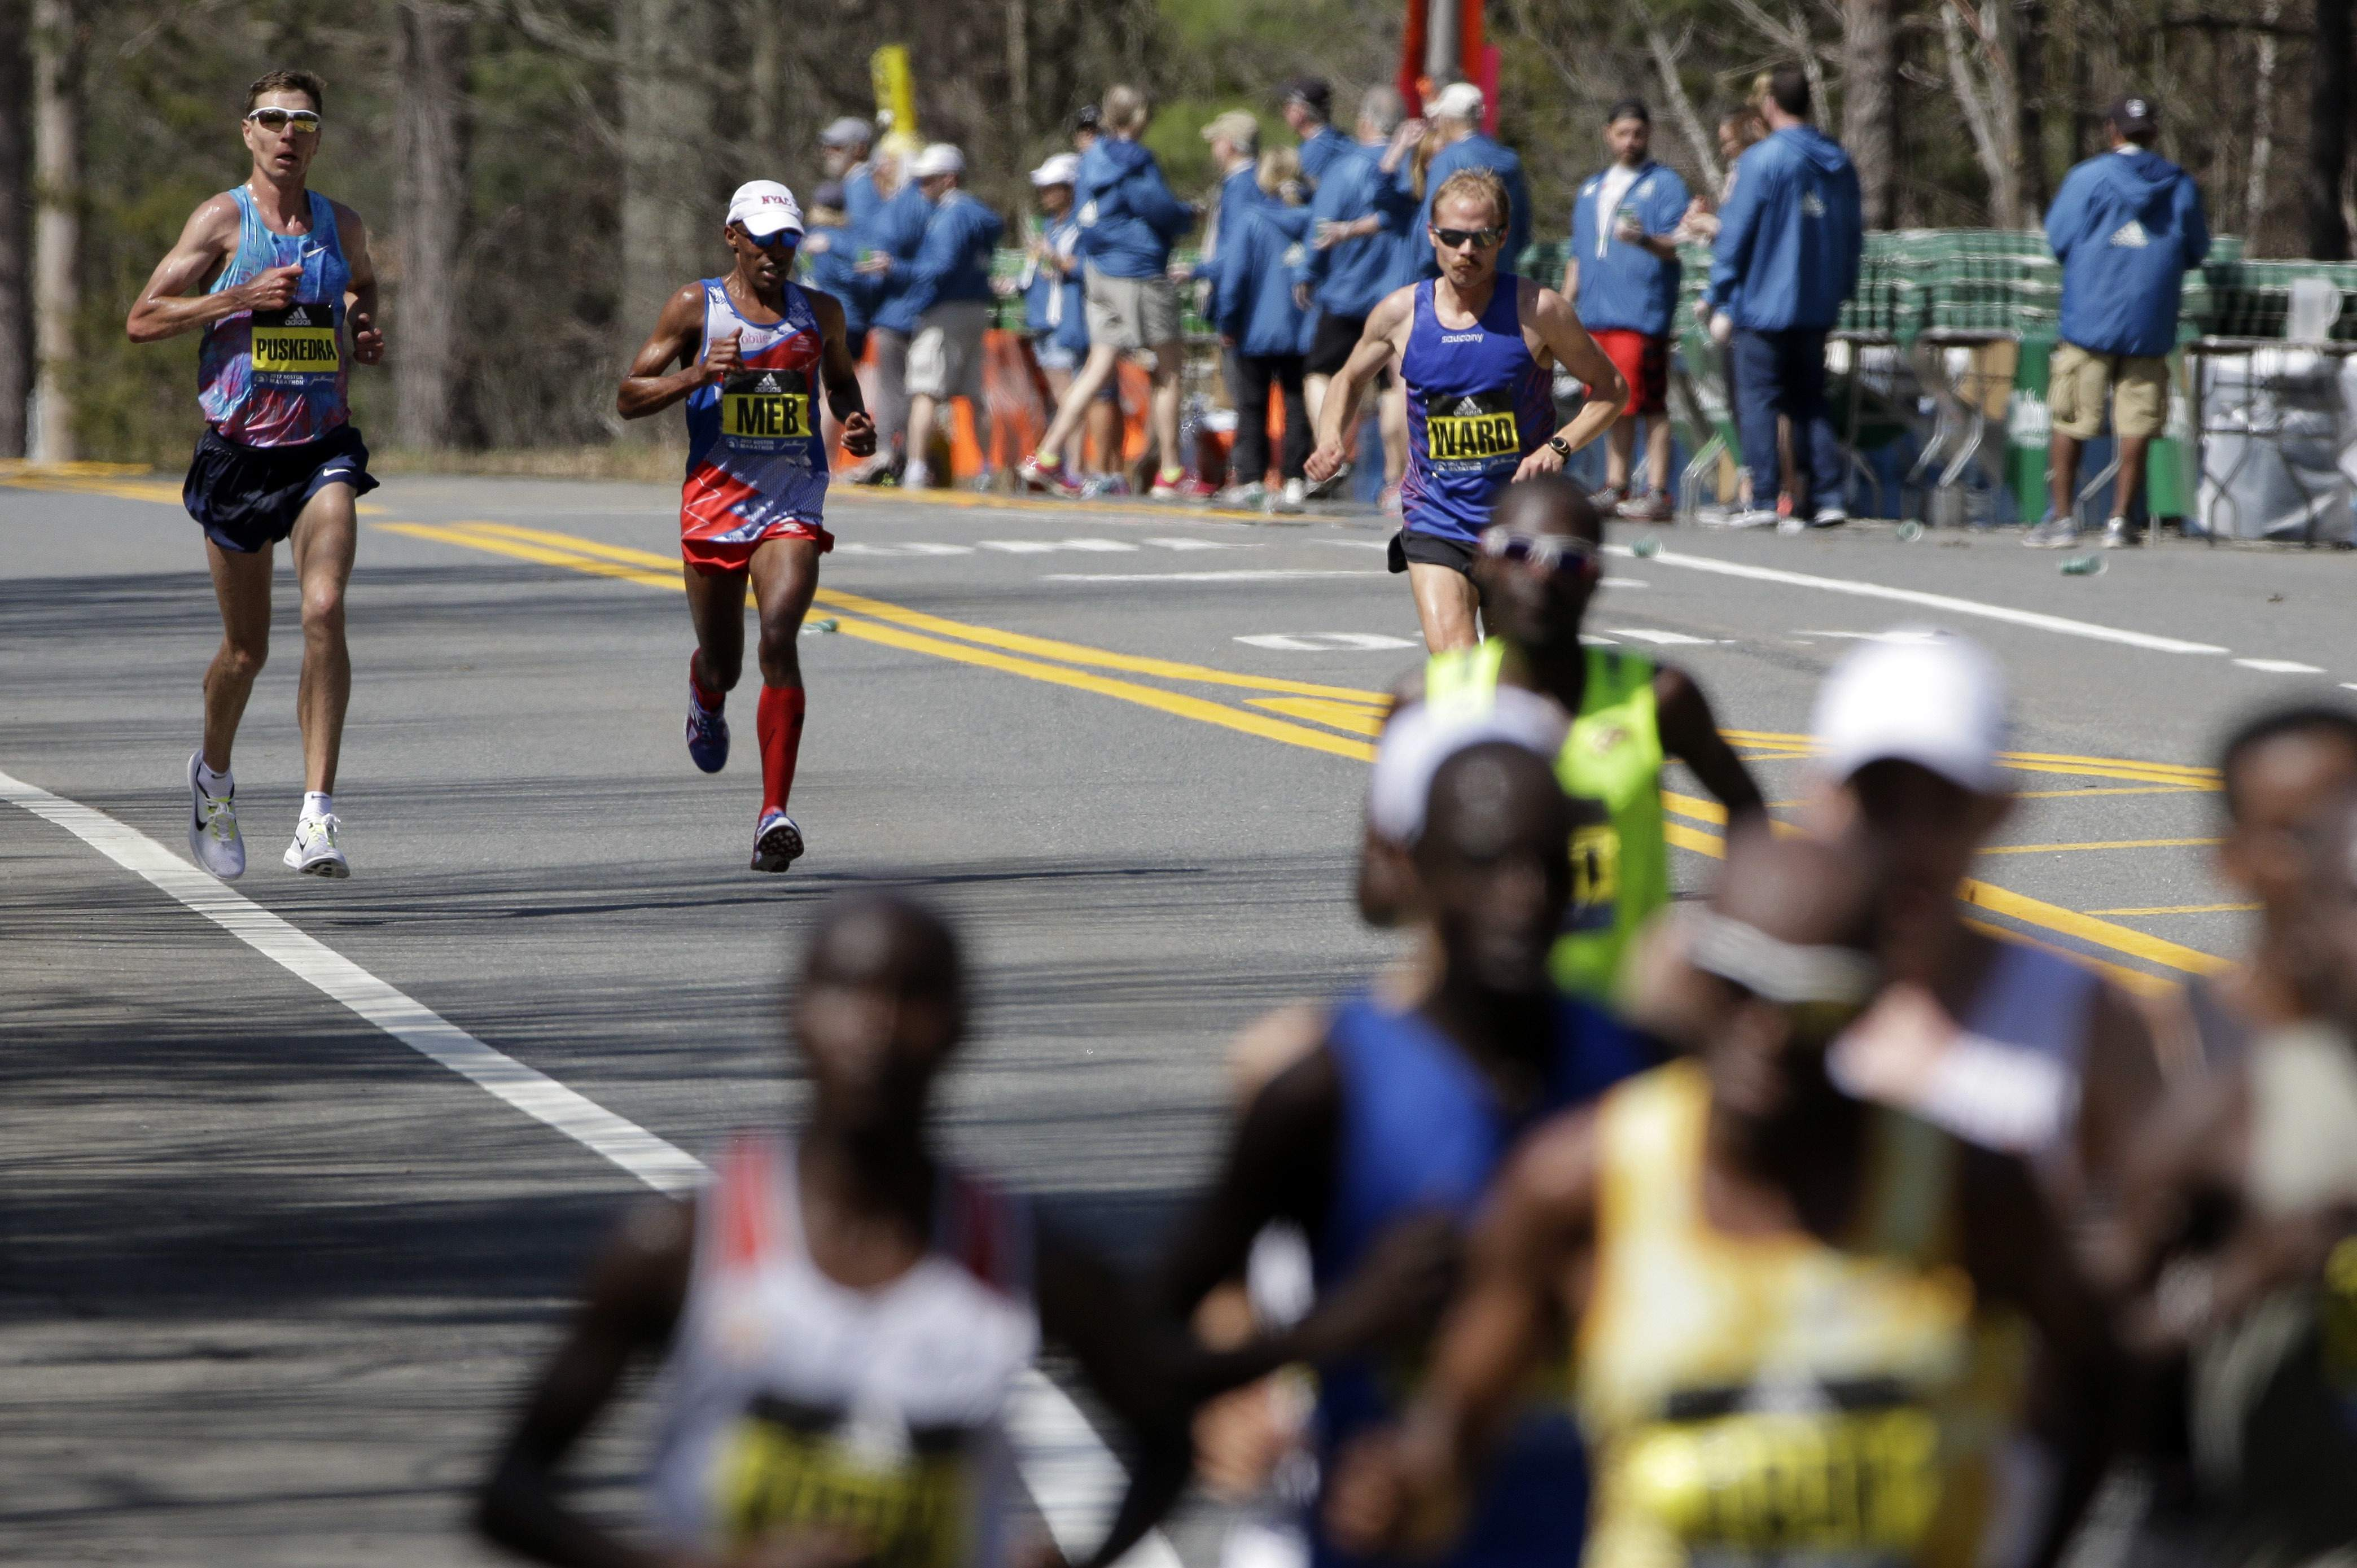 Luke Puskedra, left, Meb Keflezighi and Jared Ward, all of the United States, run behind the leaders in the 121st Boston Marathon on Monday, April 17, 2017, in Natick, Mass. THE ASSOCIATED PRESS